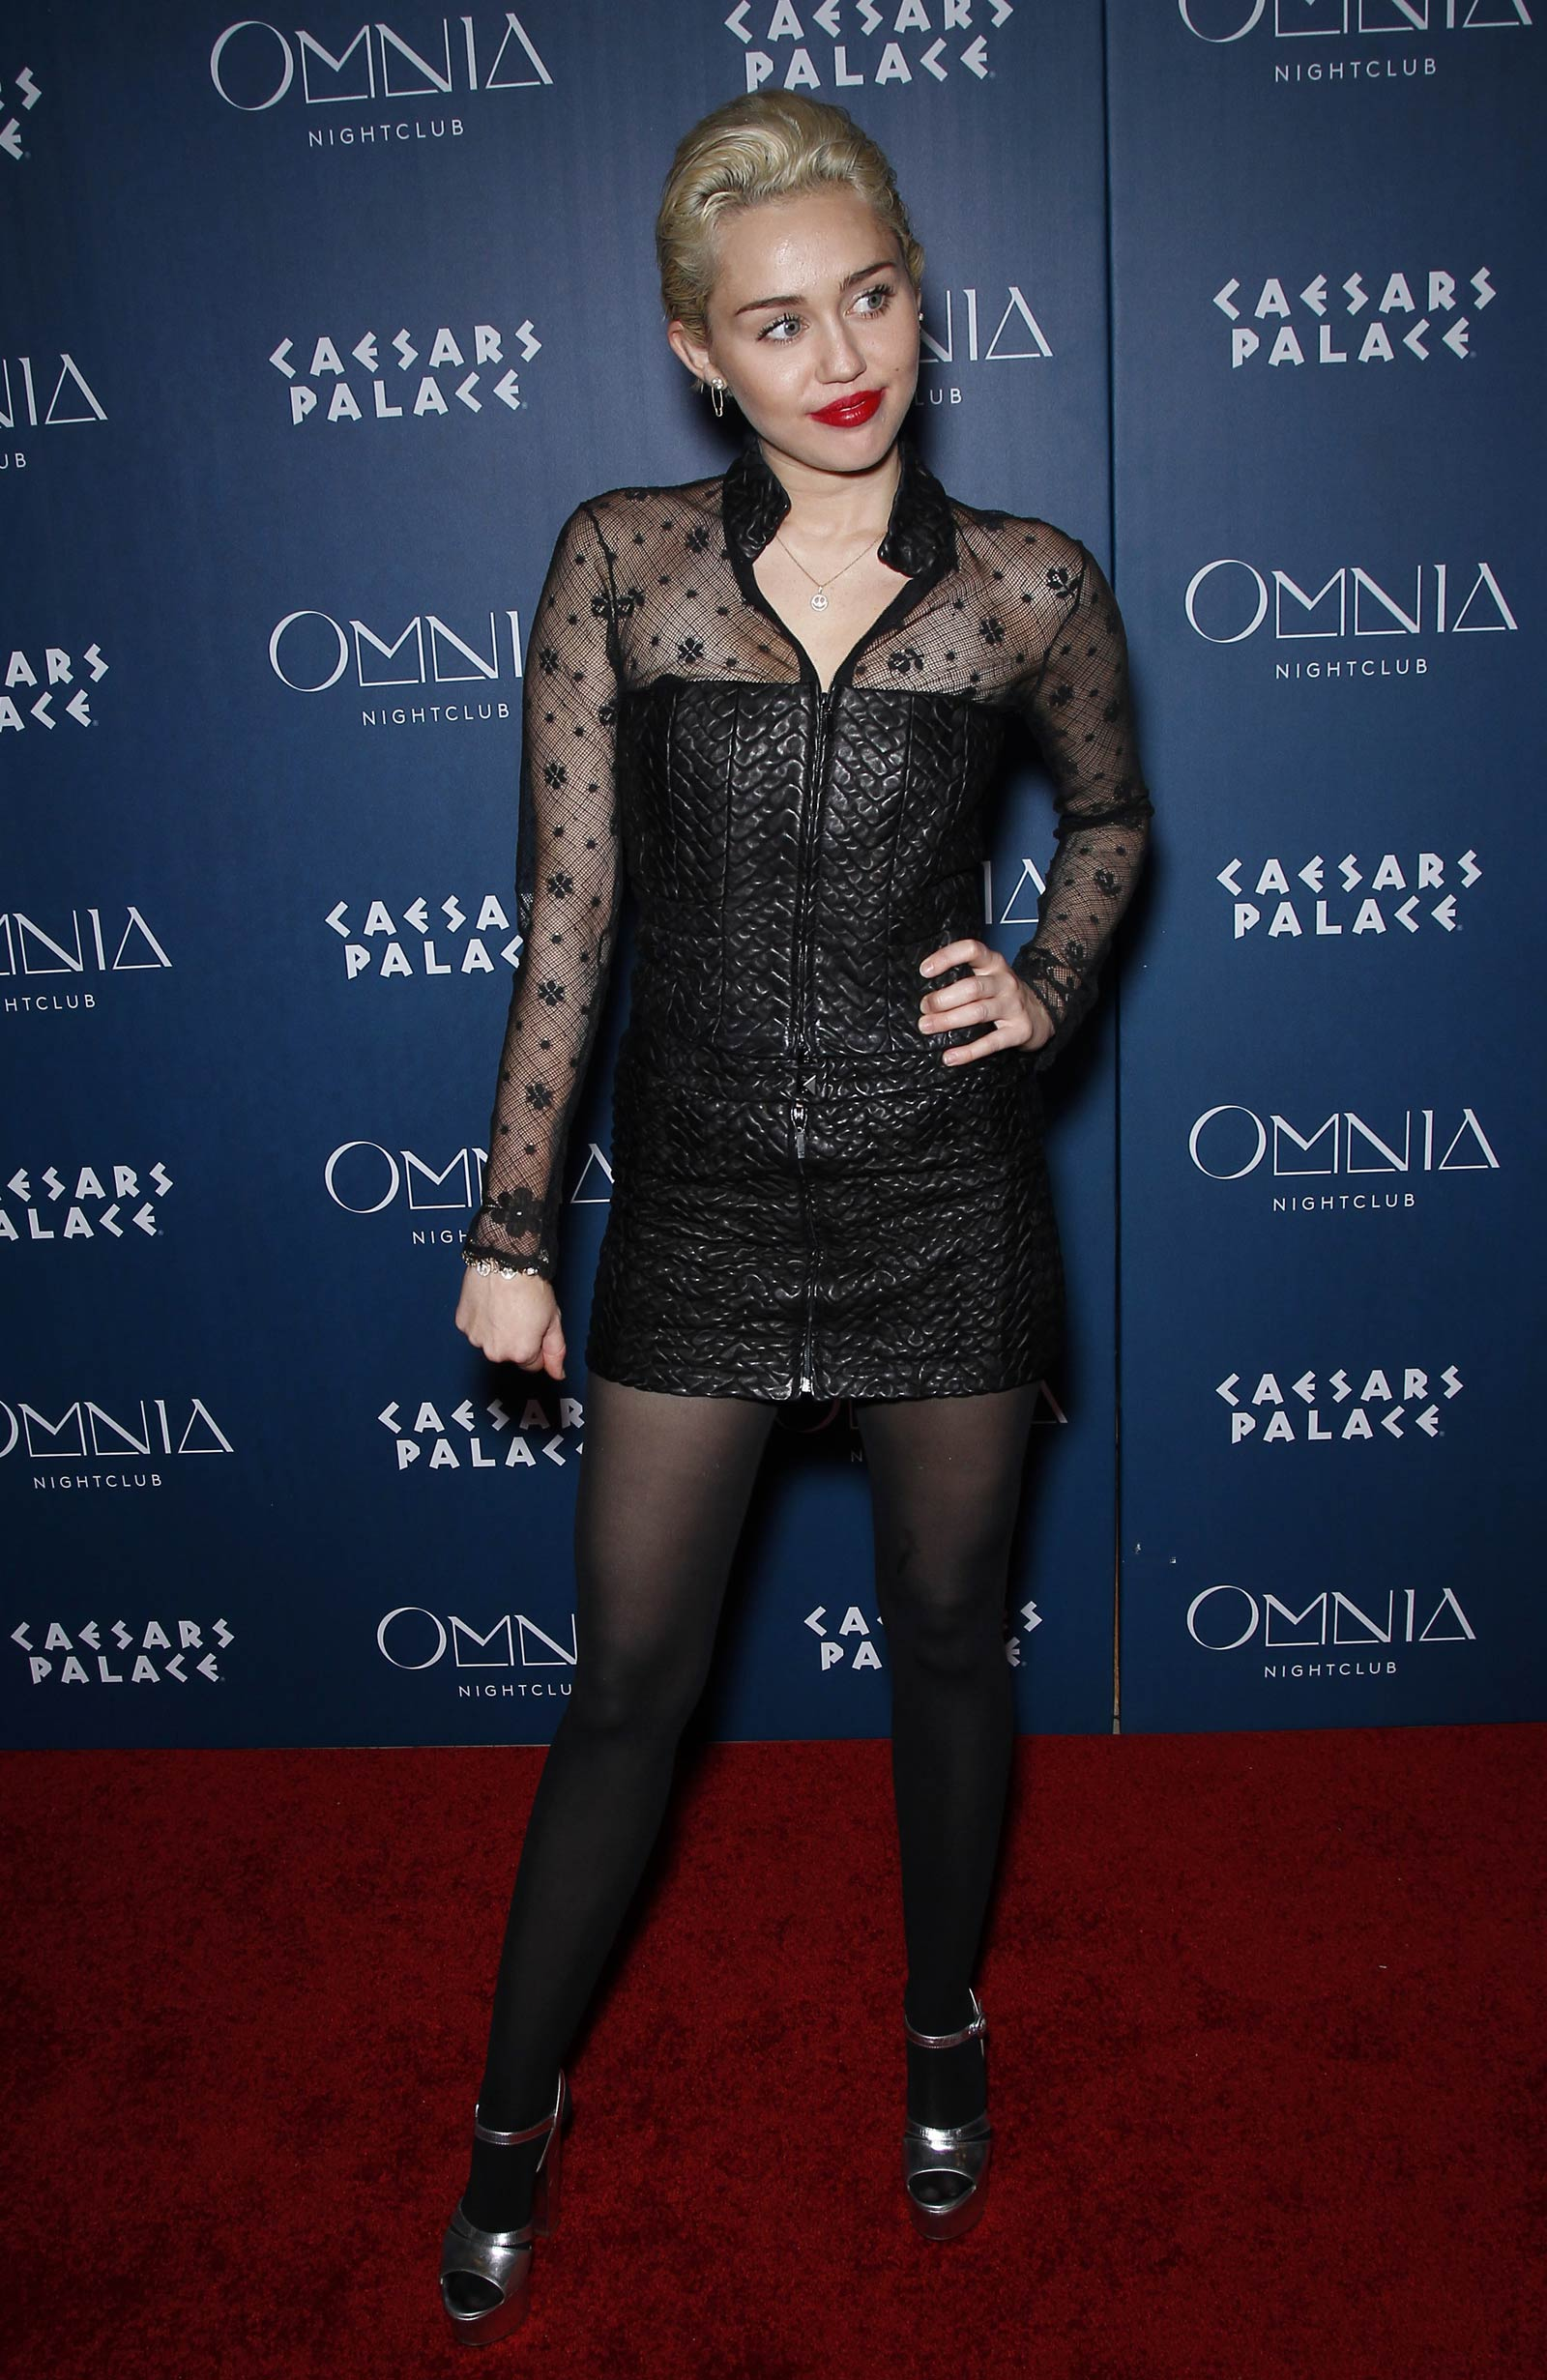 Miley Cyrus at Omnia Nightclub